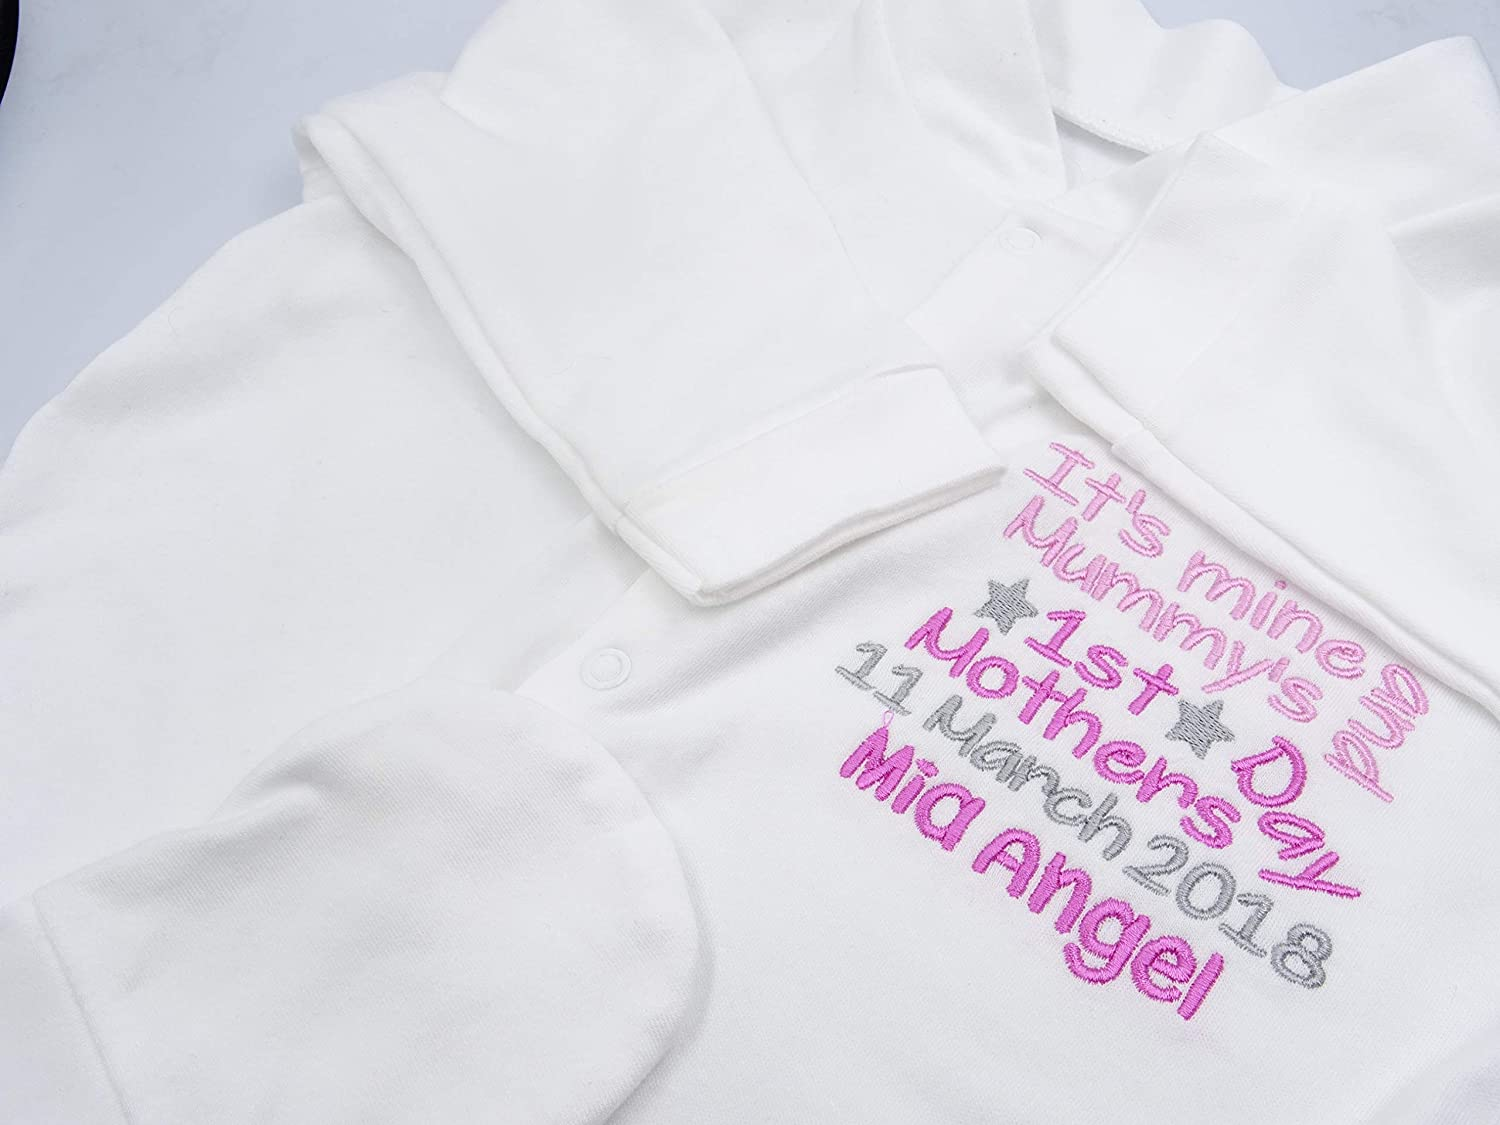 Its Mine and Mummys 0-3 Months Personalised Embroidered Baby Girls Sleepsuit Babygrow Girls Novelty Unique Gift /& Keepsake **Add Any Name** Happy 1ST Mothers Day Mummy